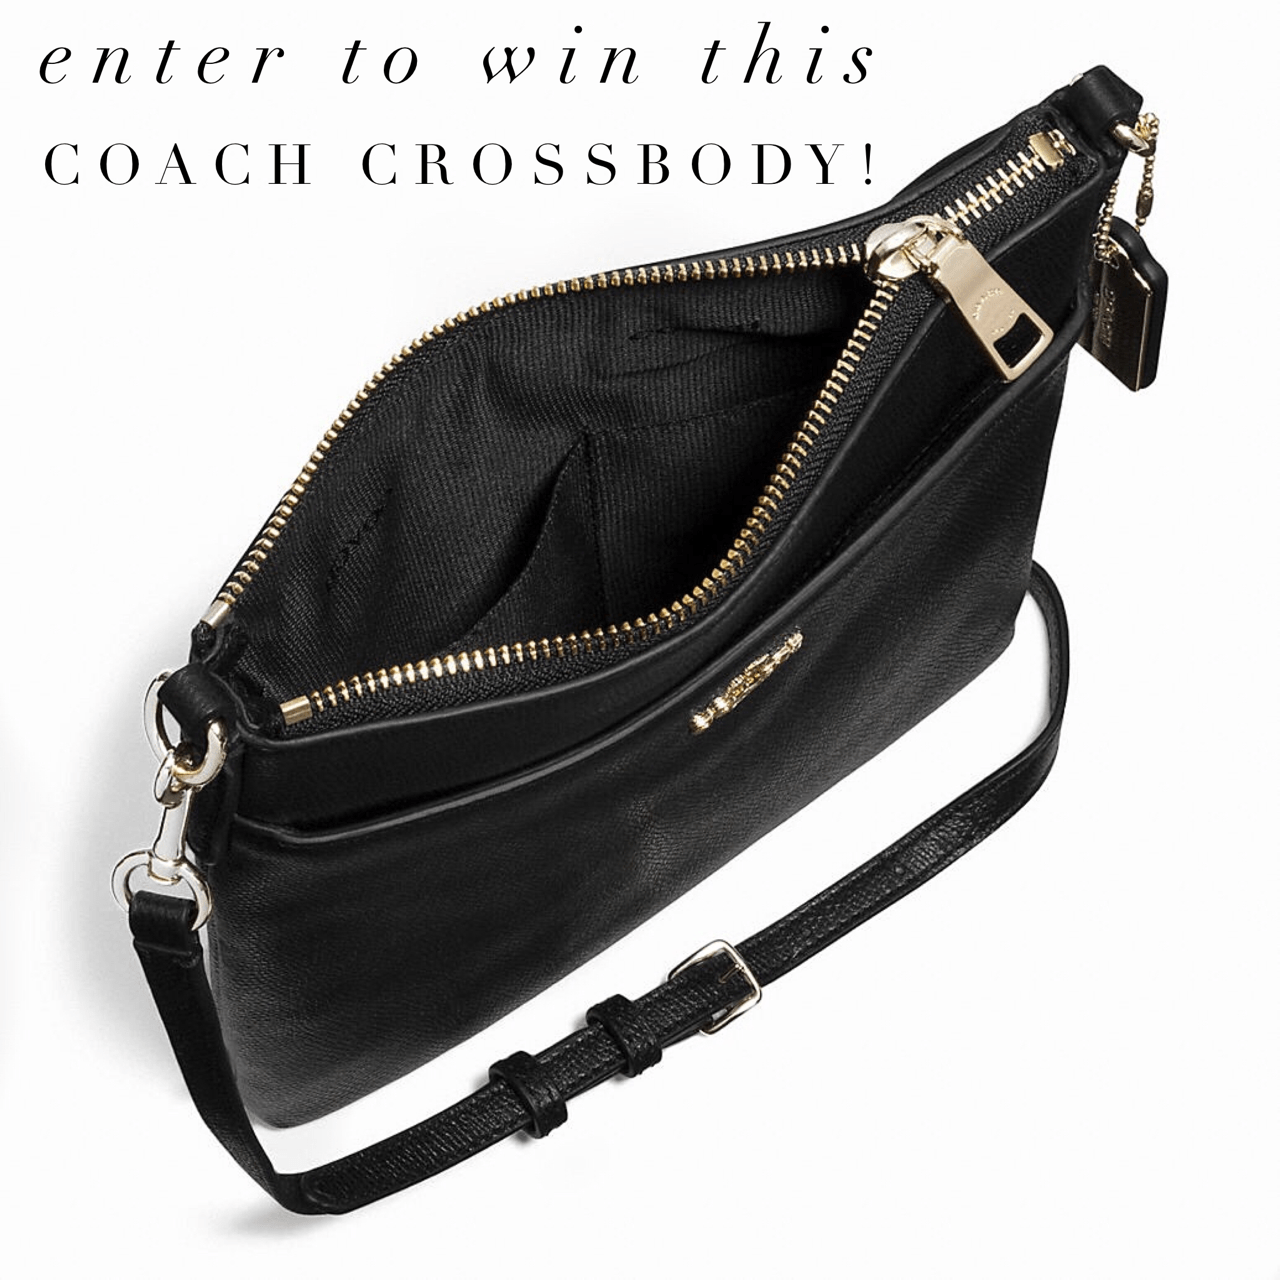 Coach Crossbody Giveaway